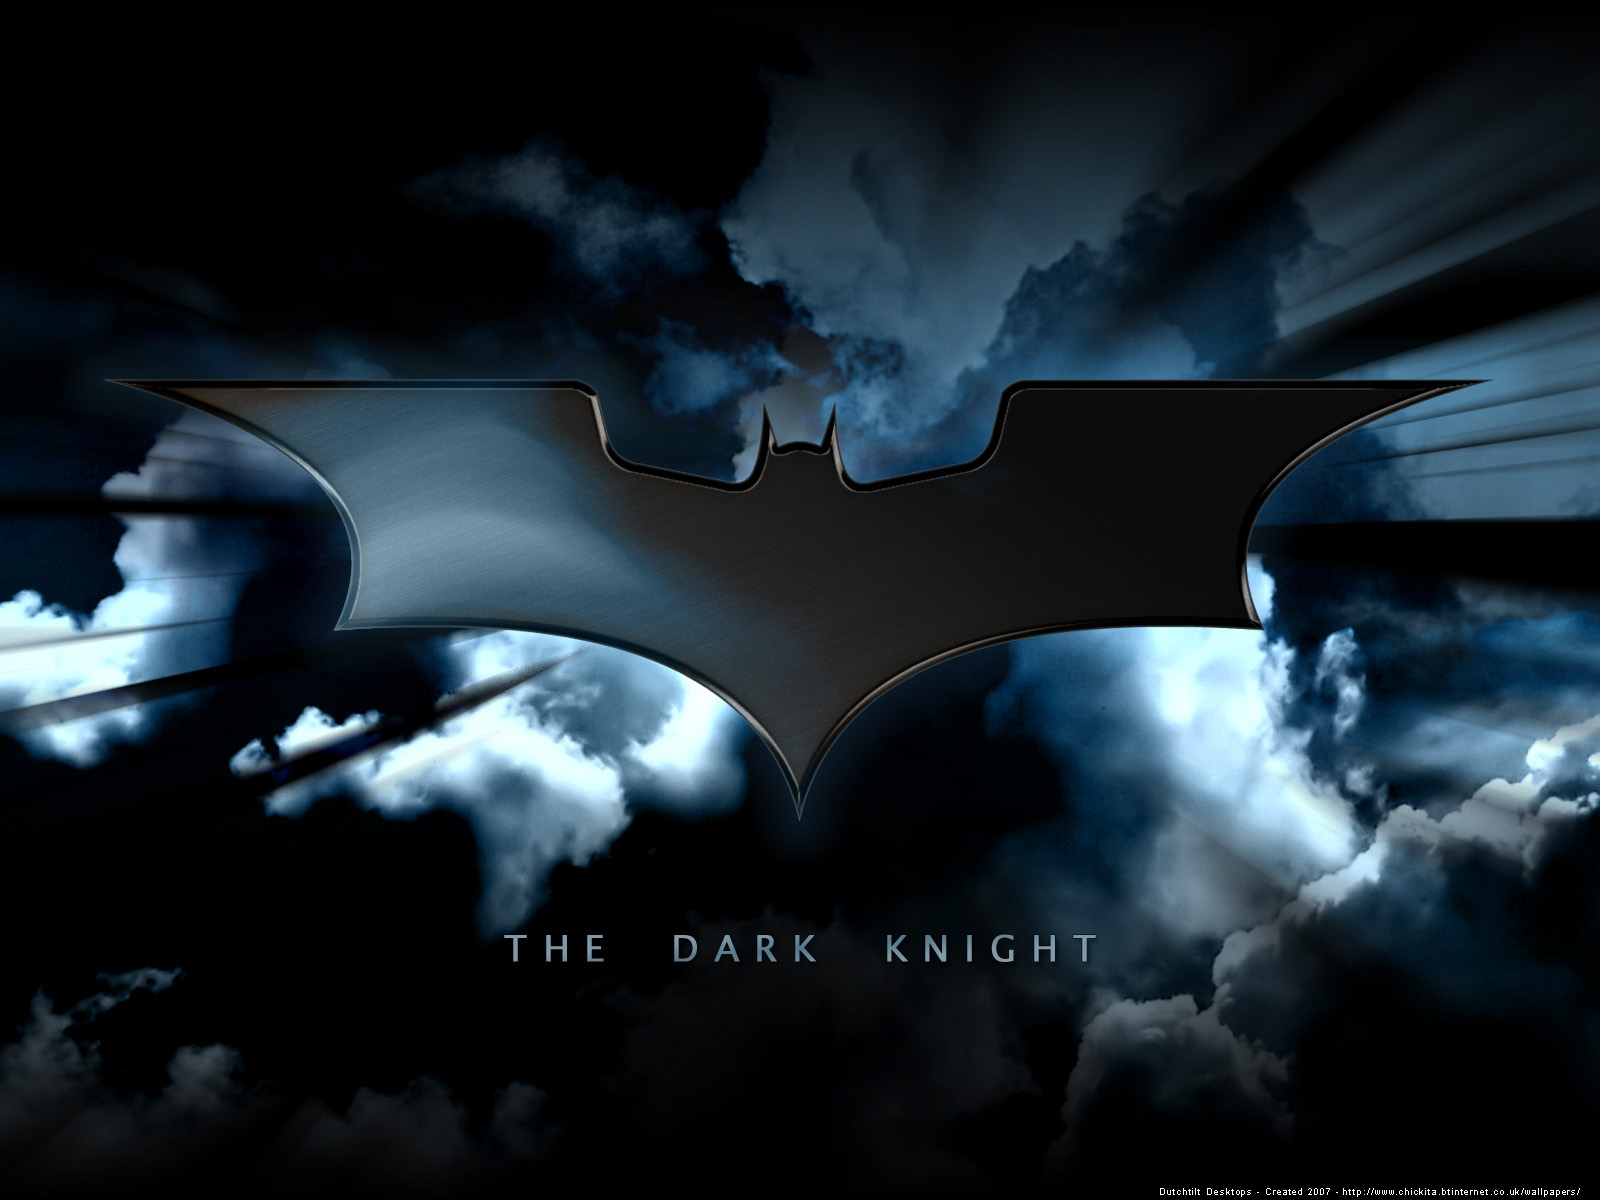 Wallpaper Download Page - The Dark Knight Wallpaper 5 the dark knight